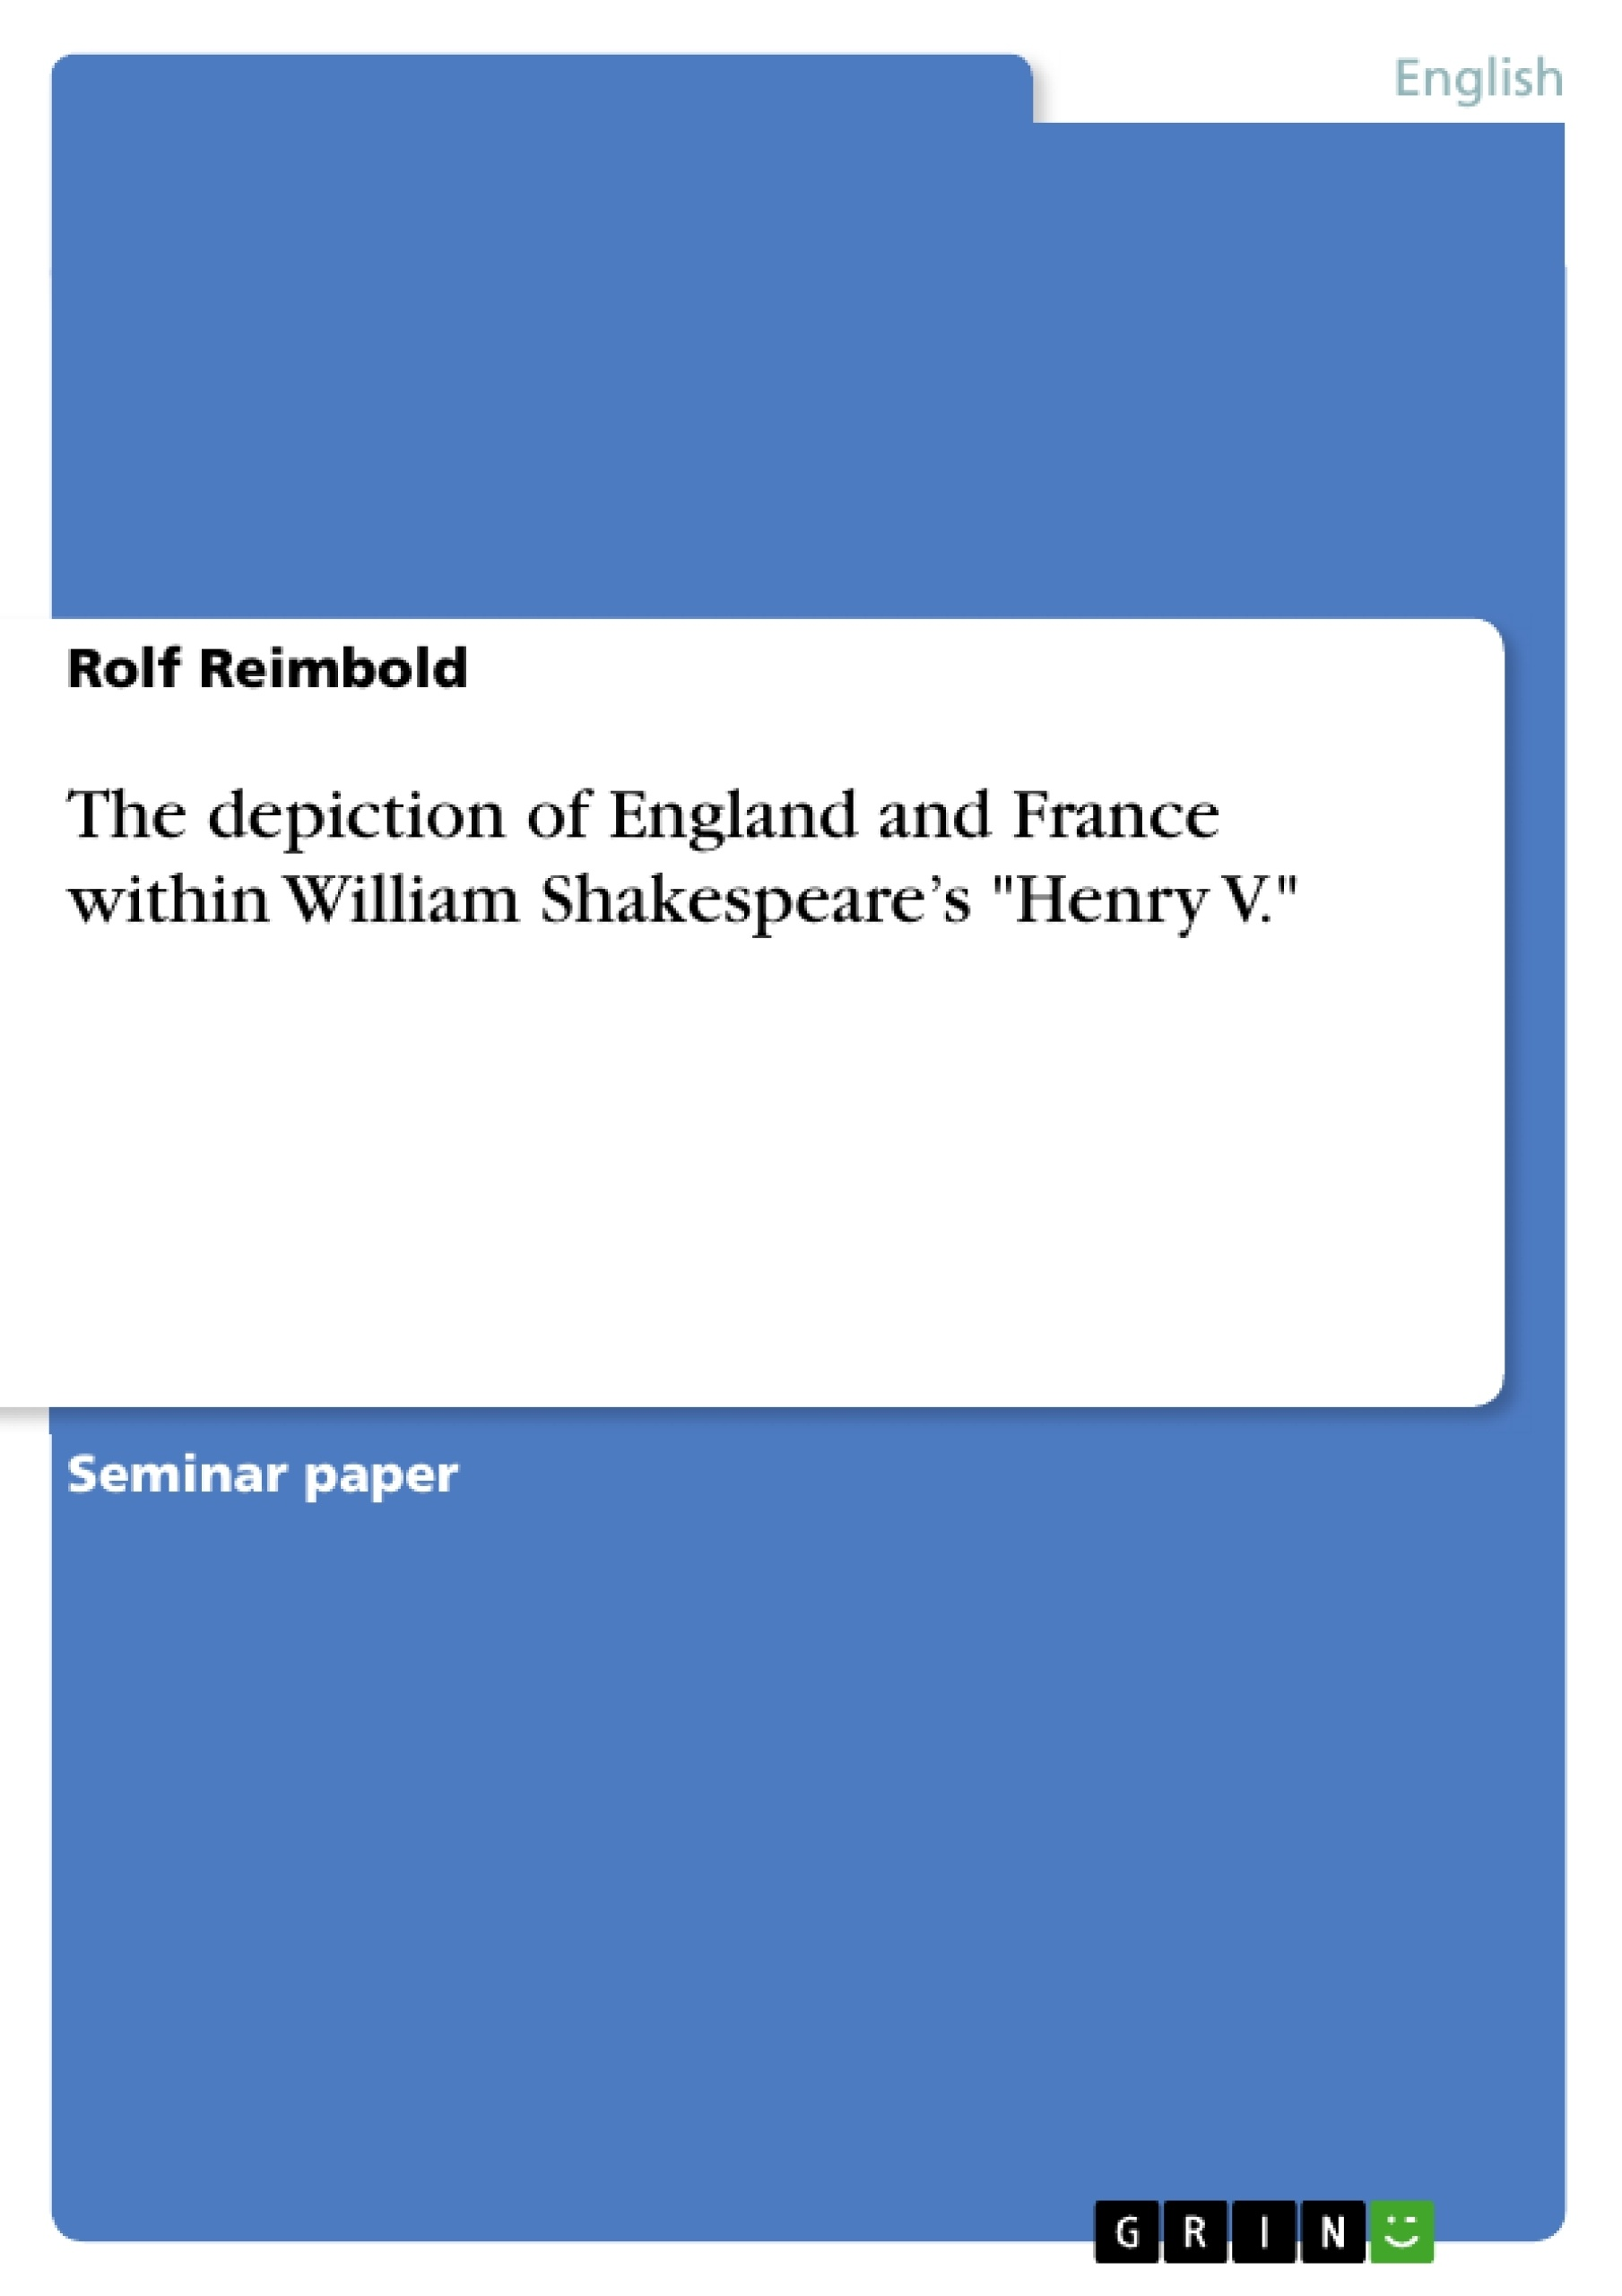 """Title: The depiction of England and France within William Shakespeare's """"Henry V."""""""